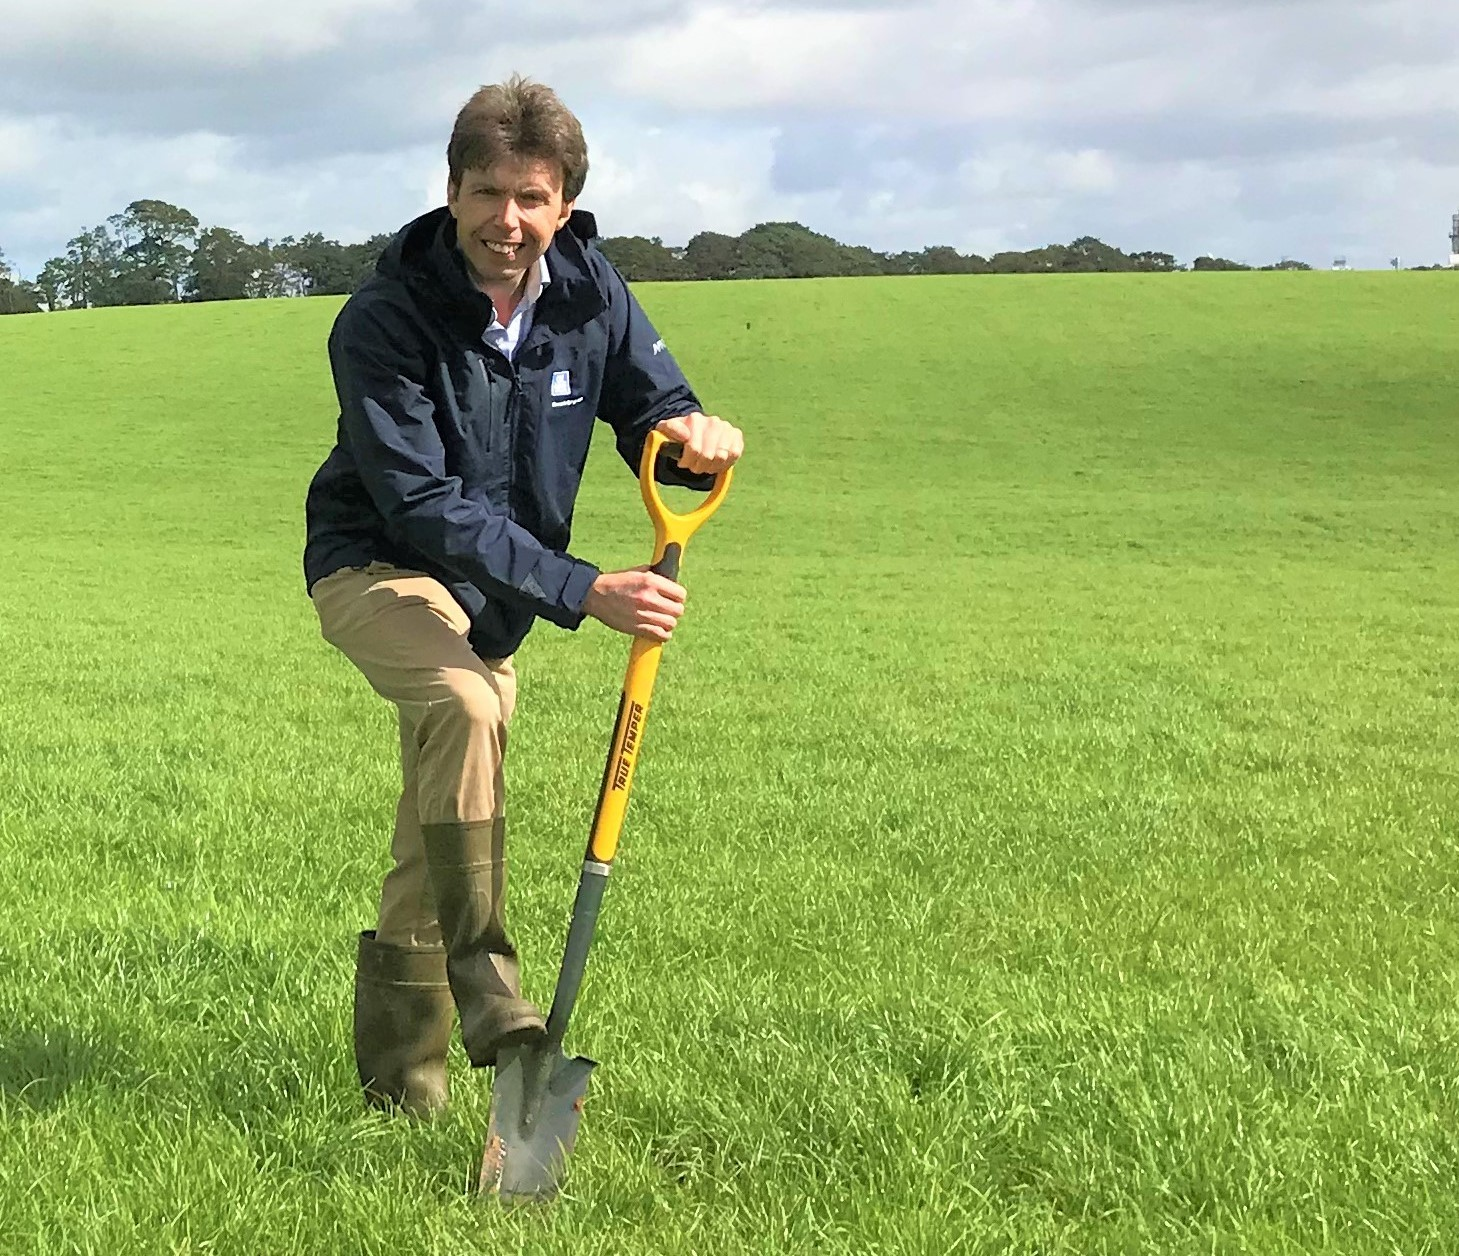 Philip Cosgrave says the benefits of liming are now well-proven